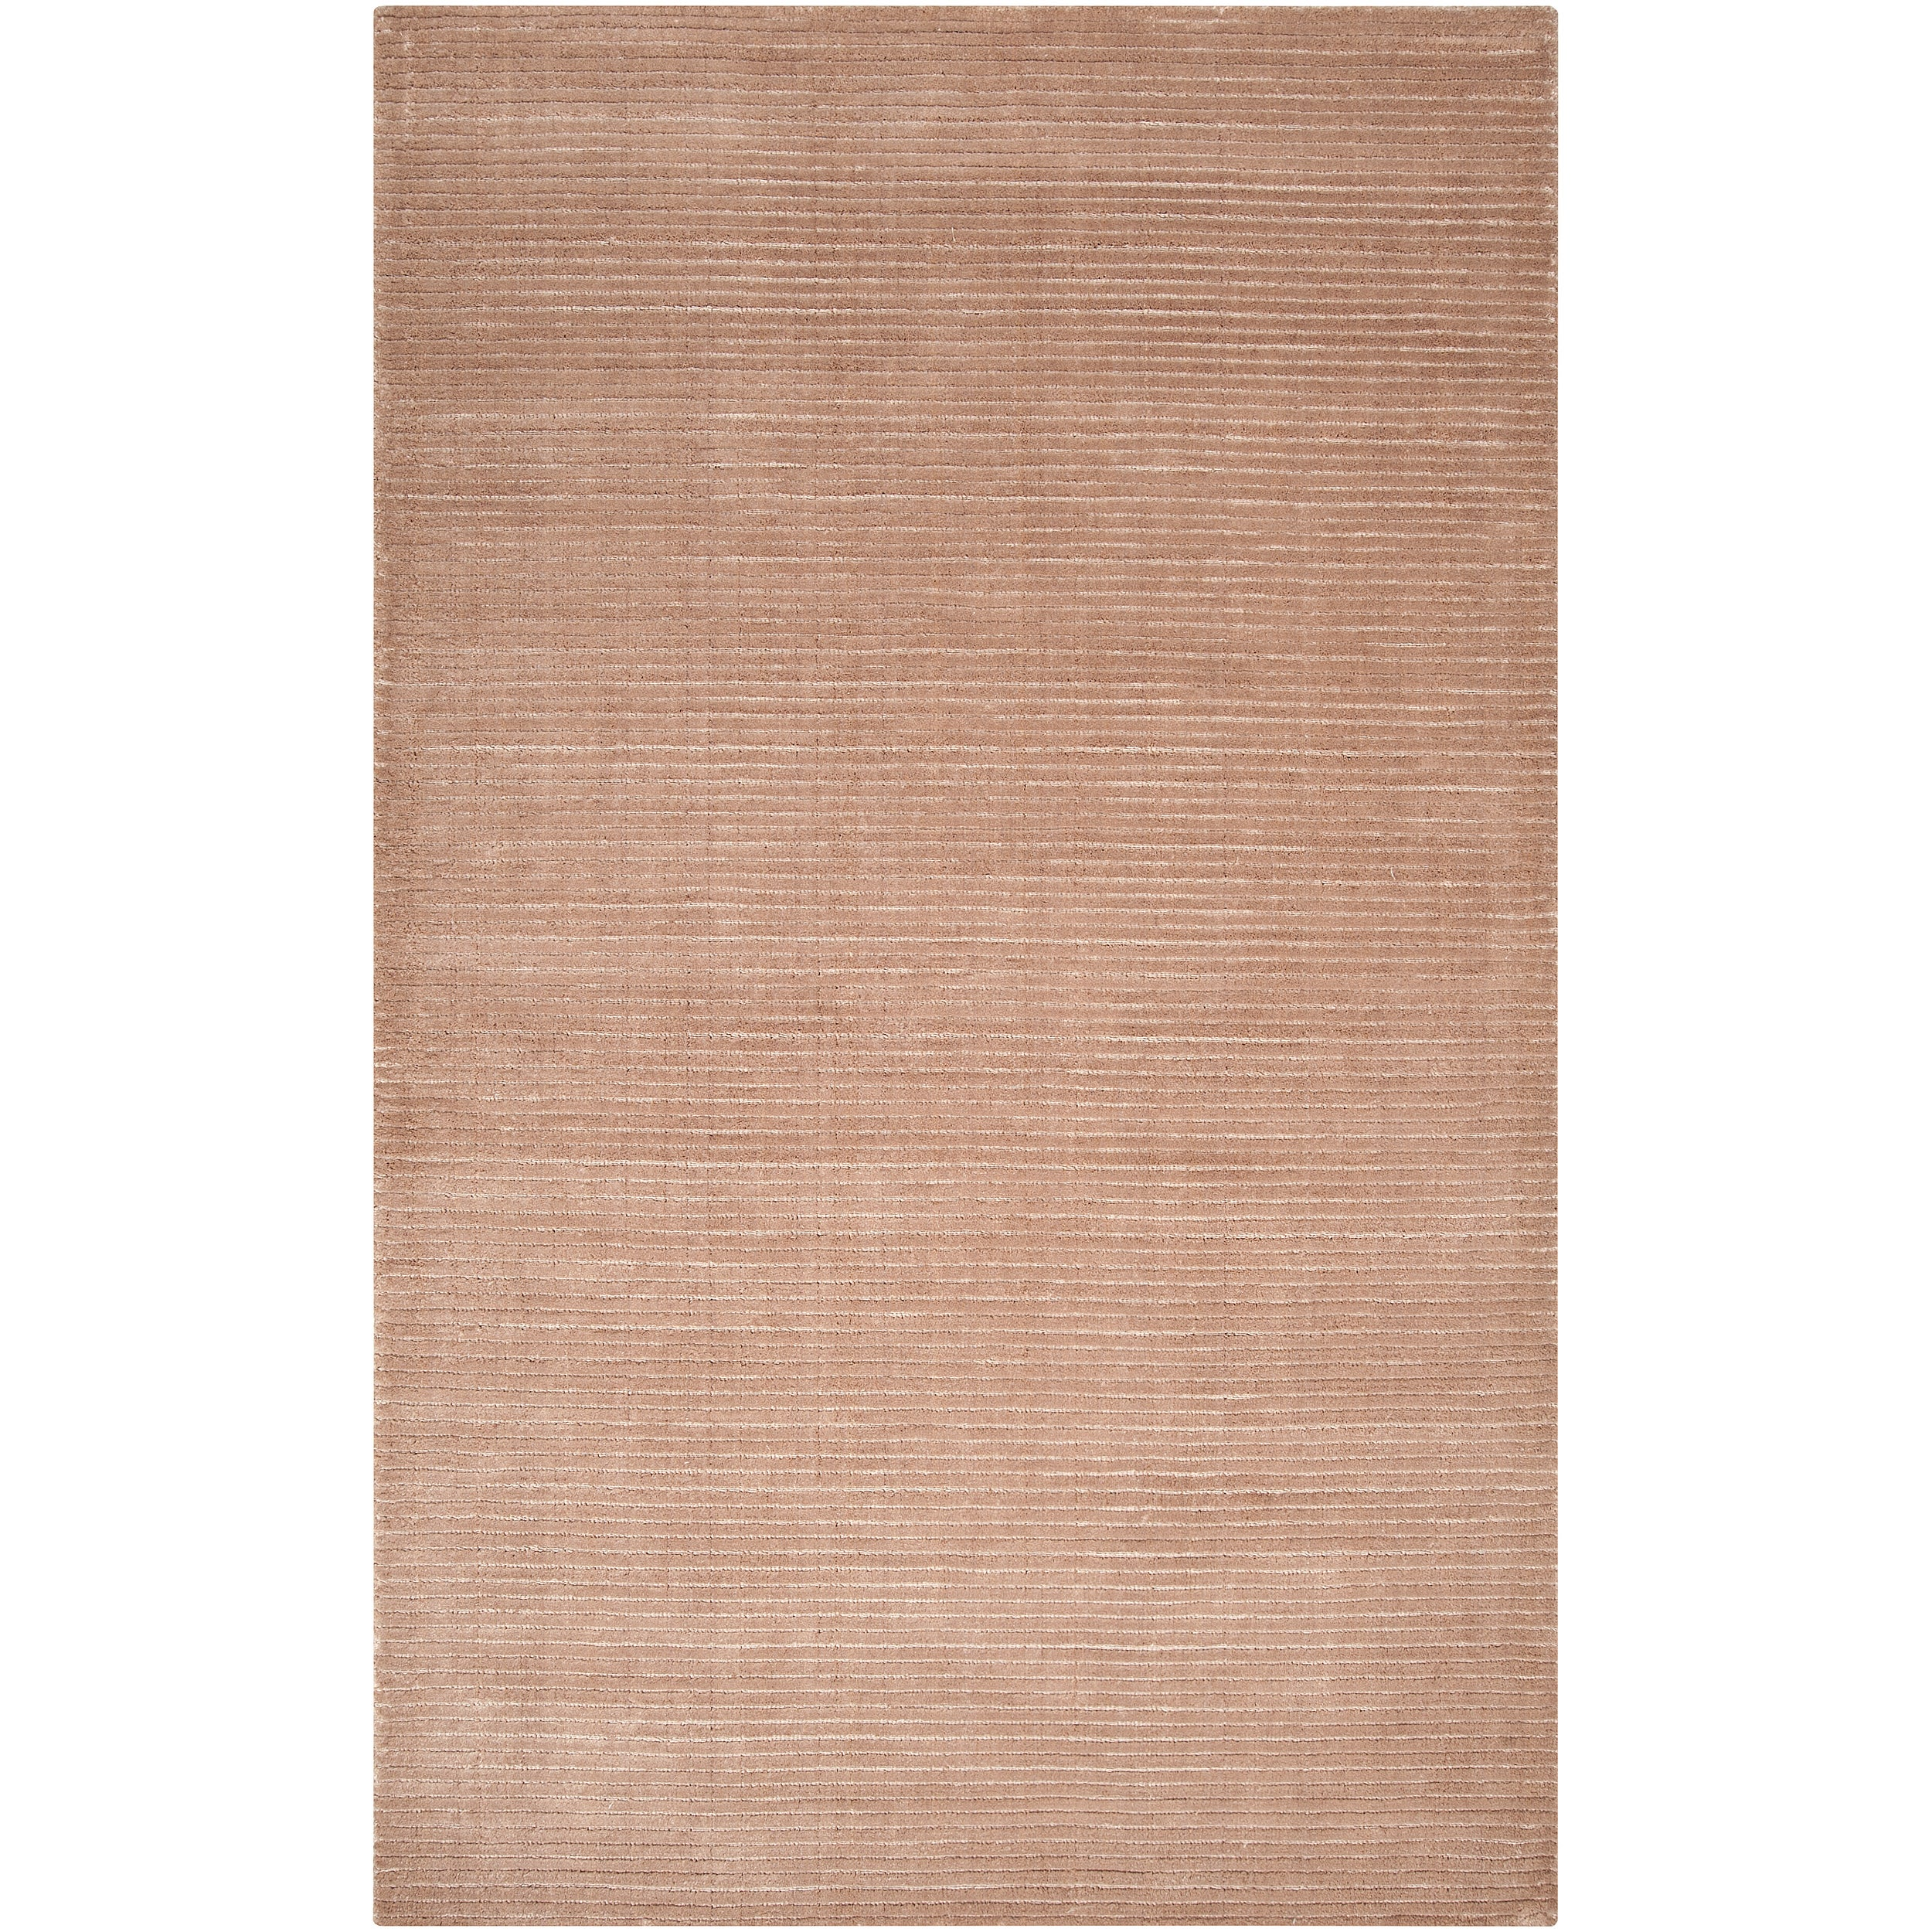 Hand-woven Solid Beige Casual Portage Rug (2' x 3')